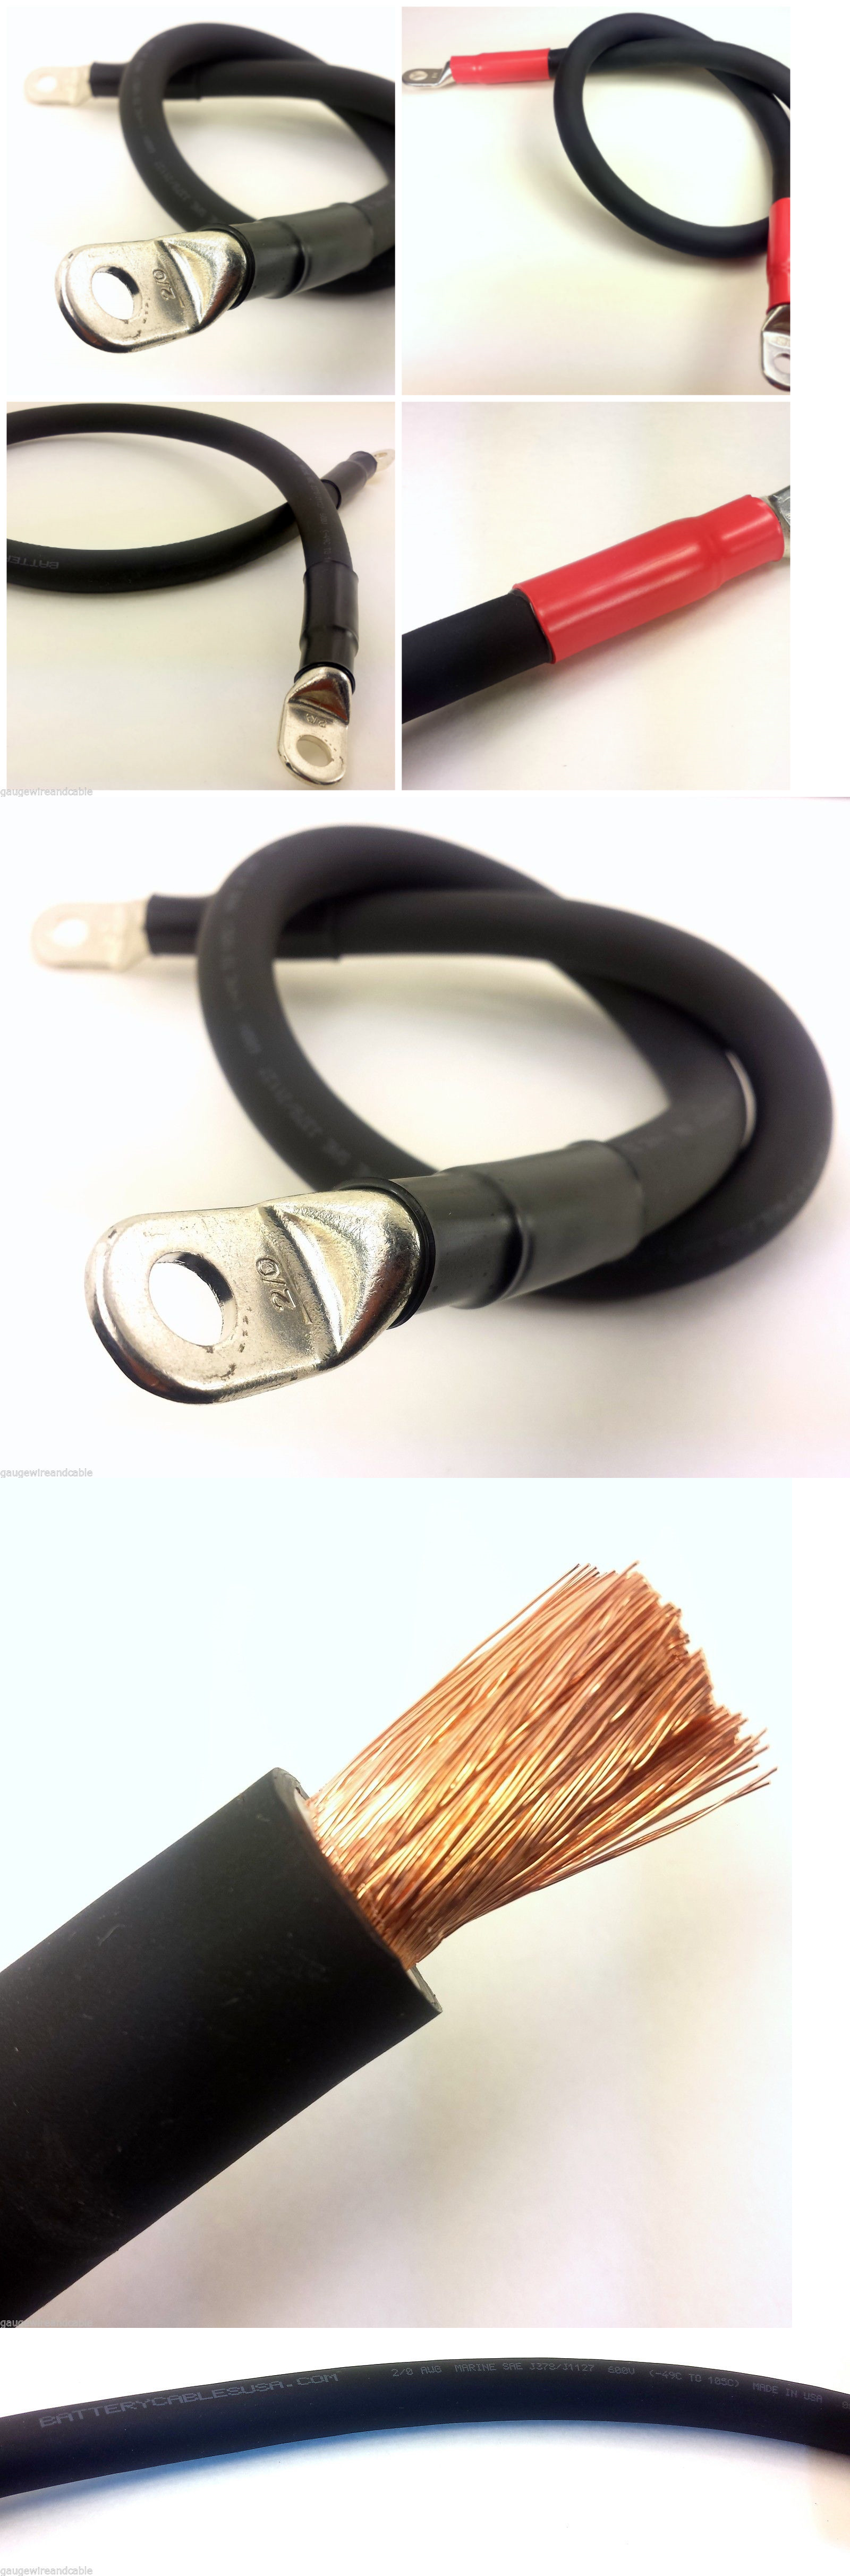 Other Electrical and Solar 3188: 2 0 Gauge Awg Copper Battery Cable ...